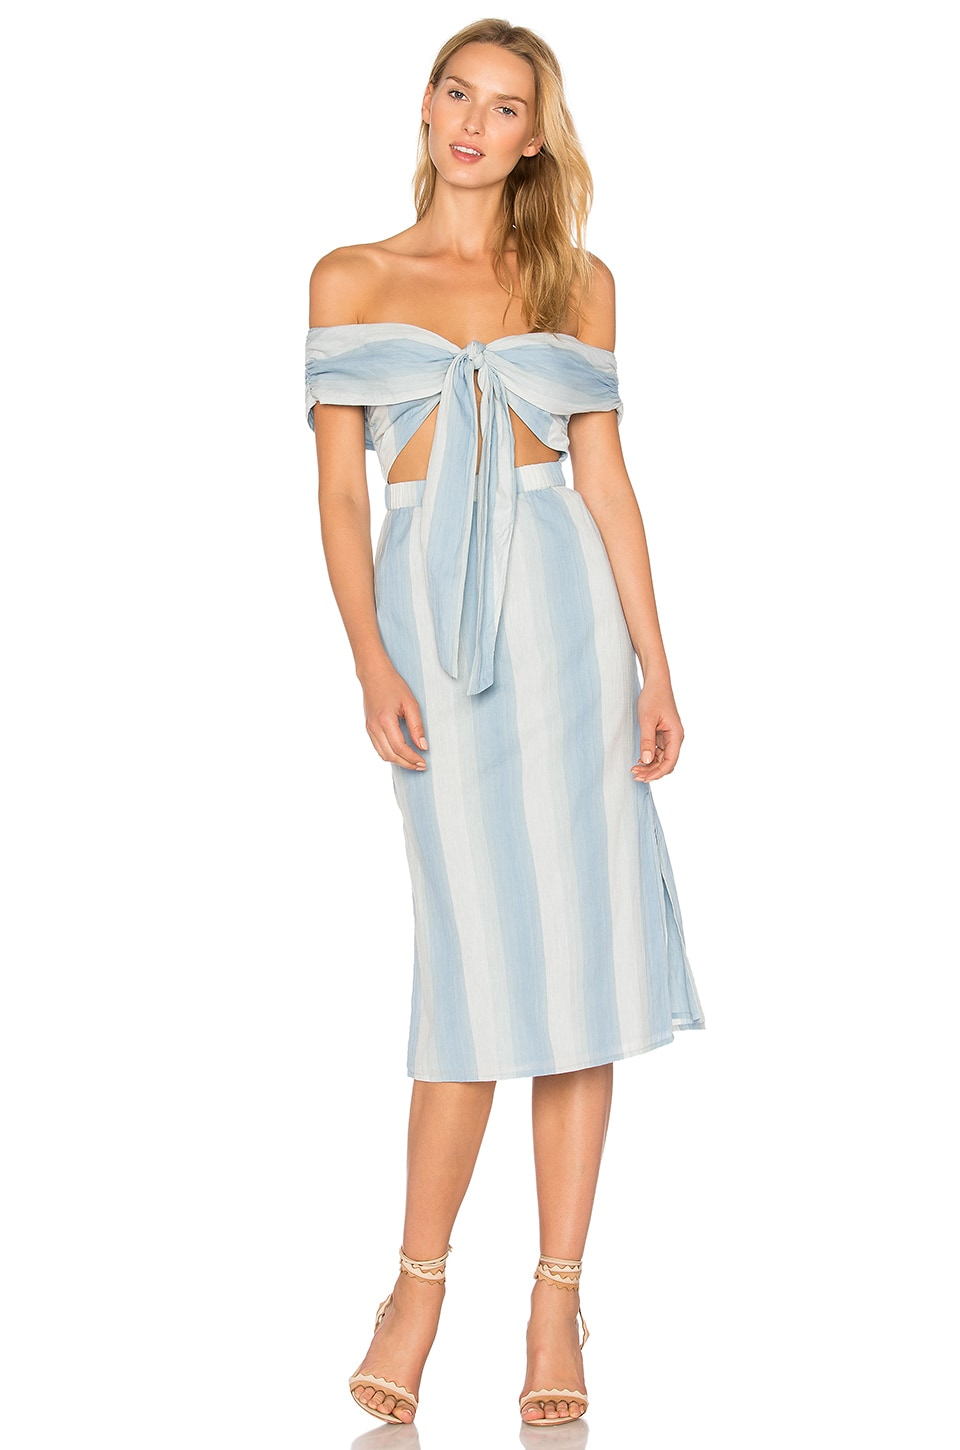 MAJORELLE Rum Runner Dress in Blue Stripe